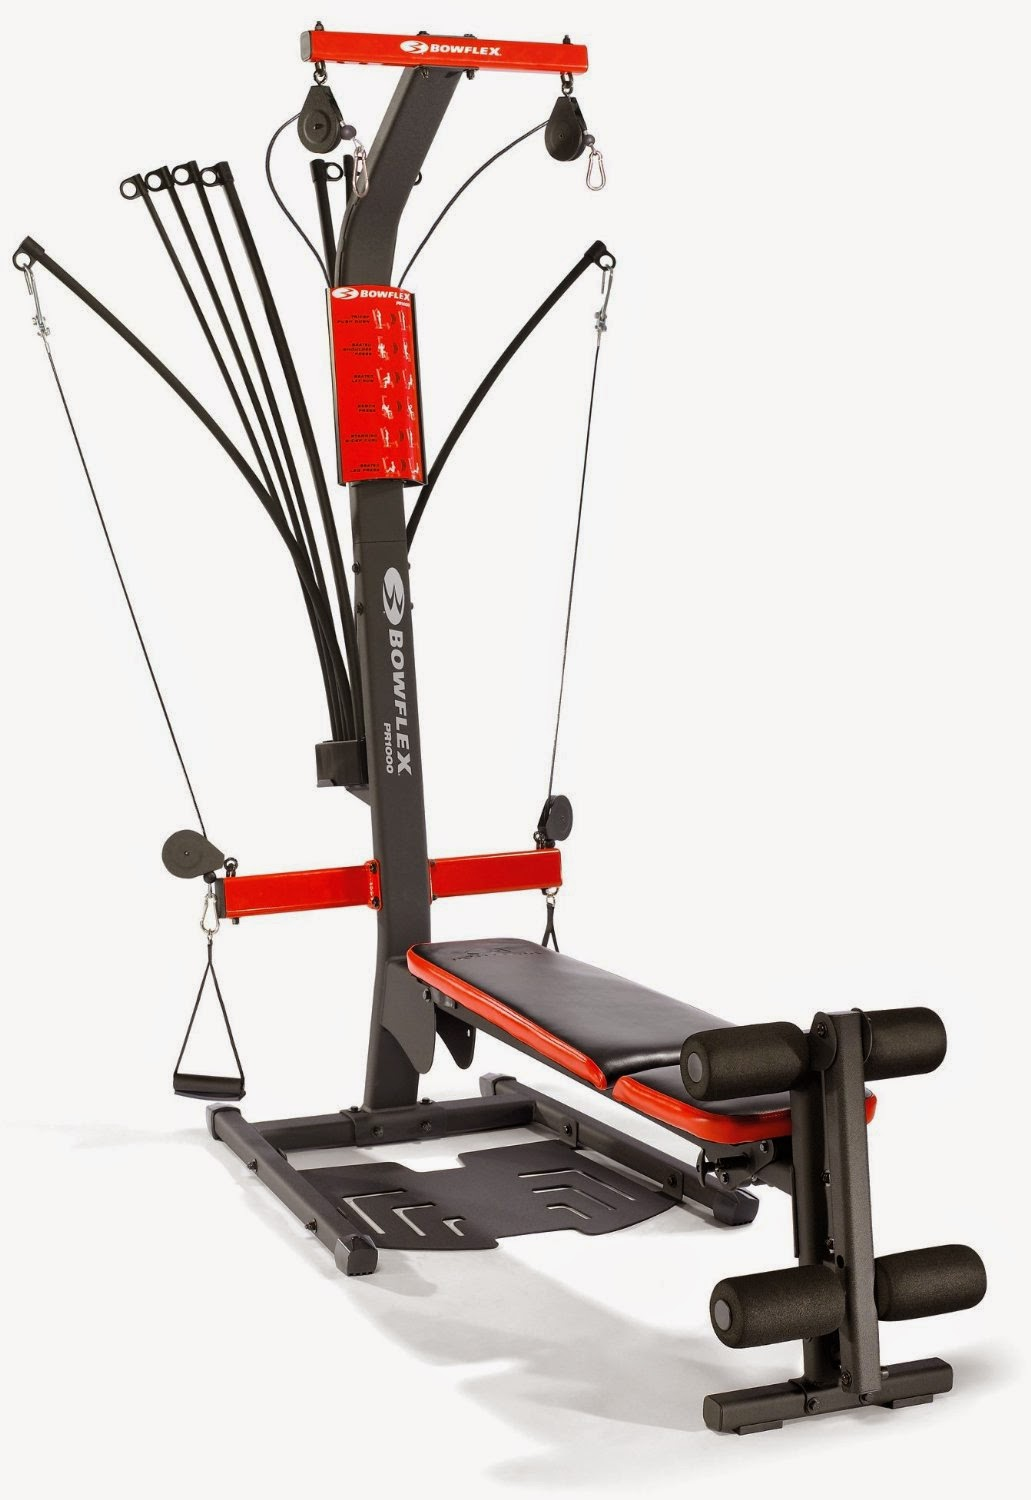 Health and Fitness Den: Bowflex PR1000 versus Bowflex PR3000 Home Gym